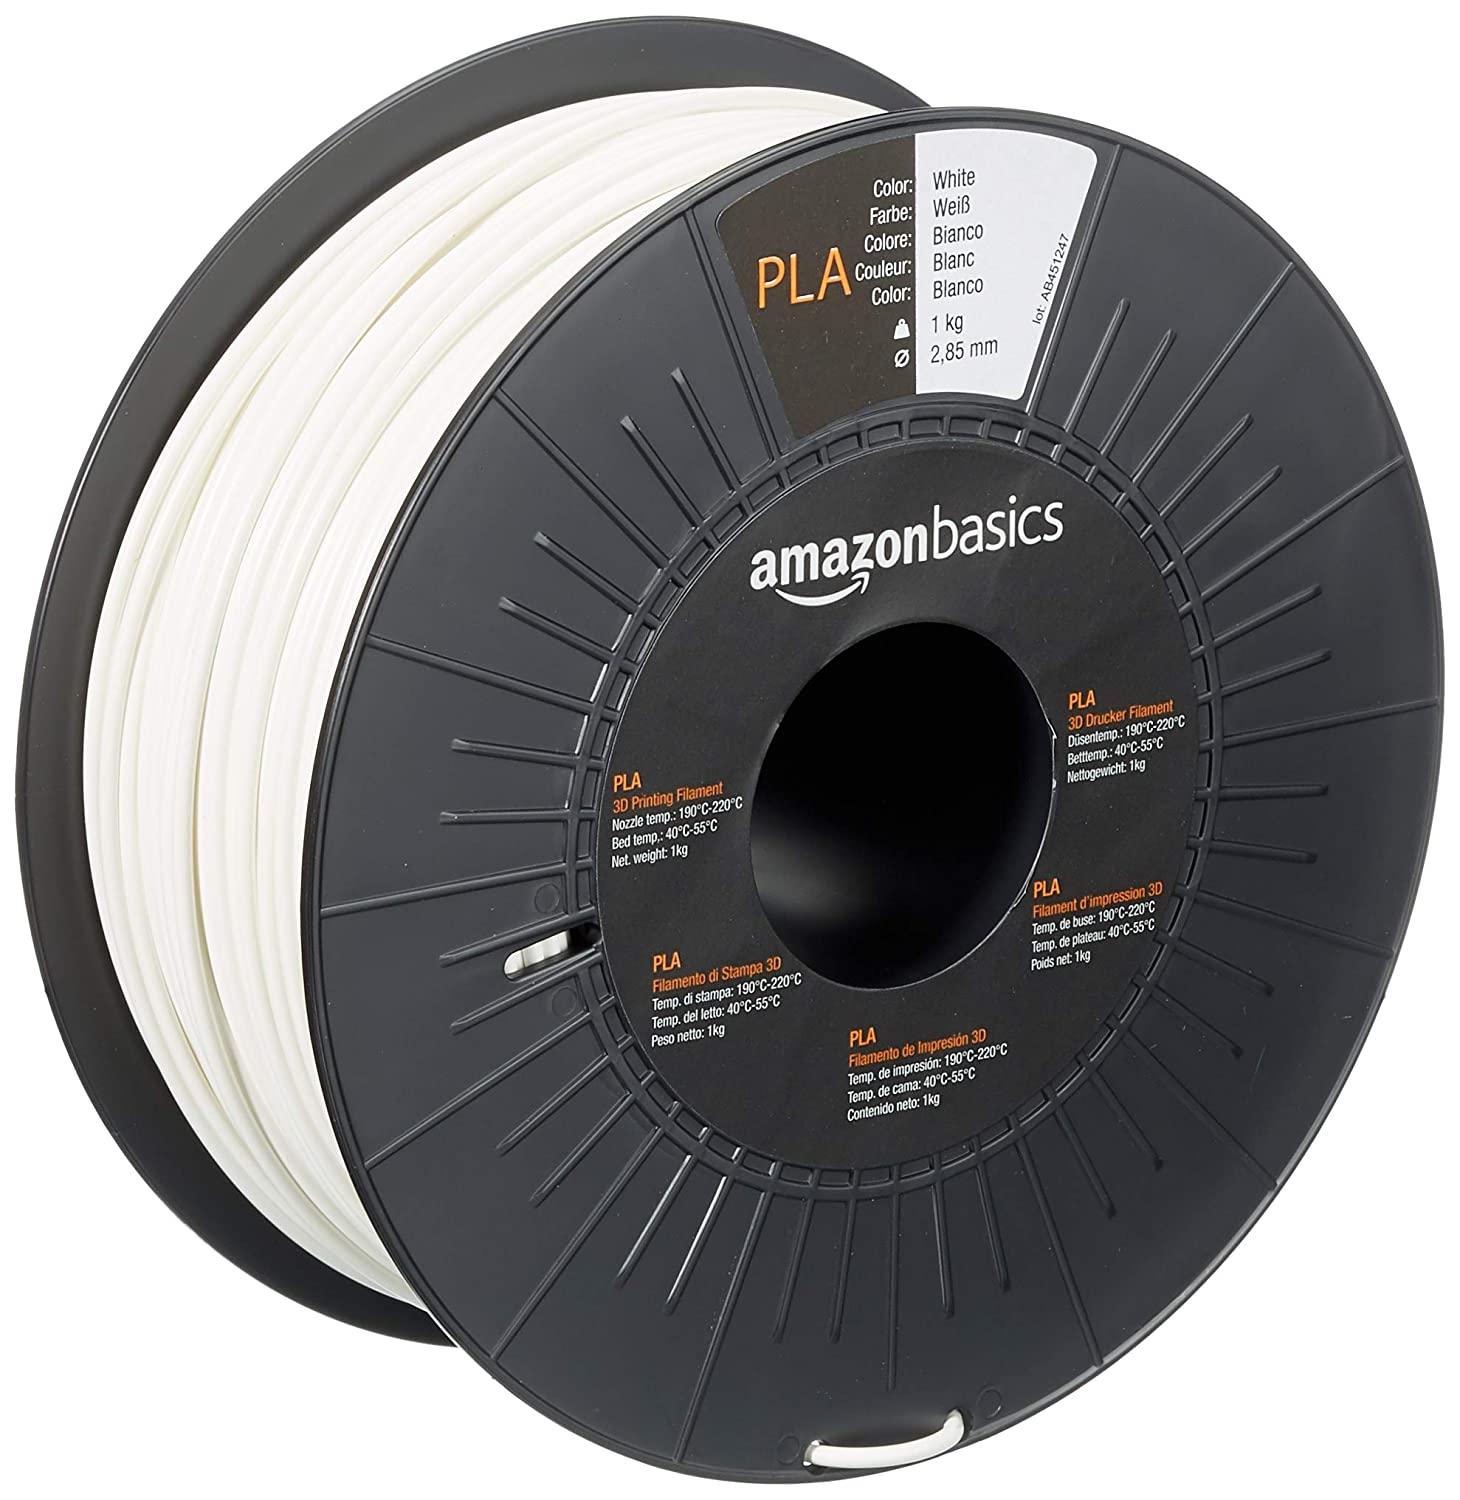 AmazonBasics PLA 3D Printer Filament, 2.85mm, White, 1 kg Spool